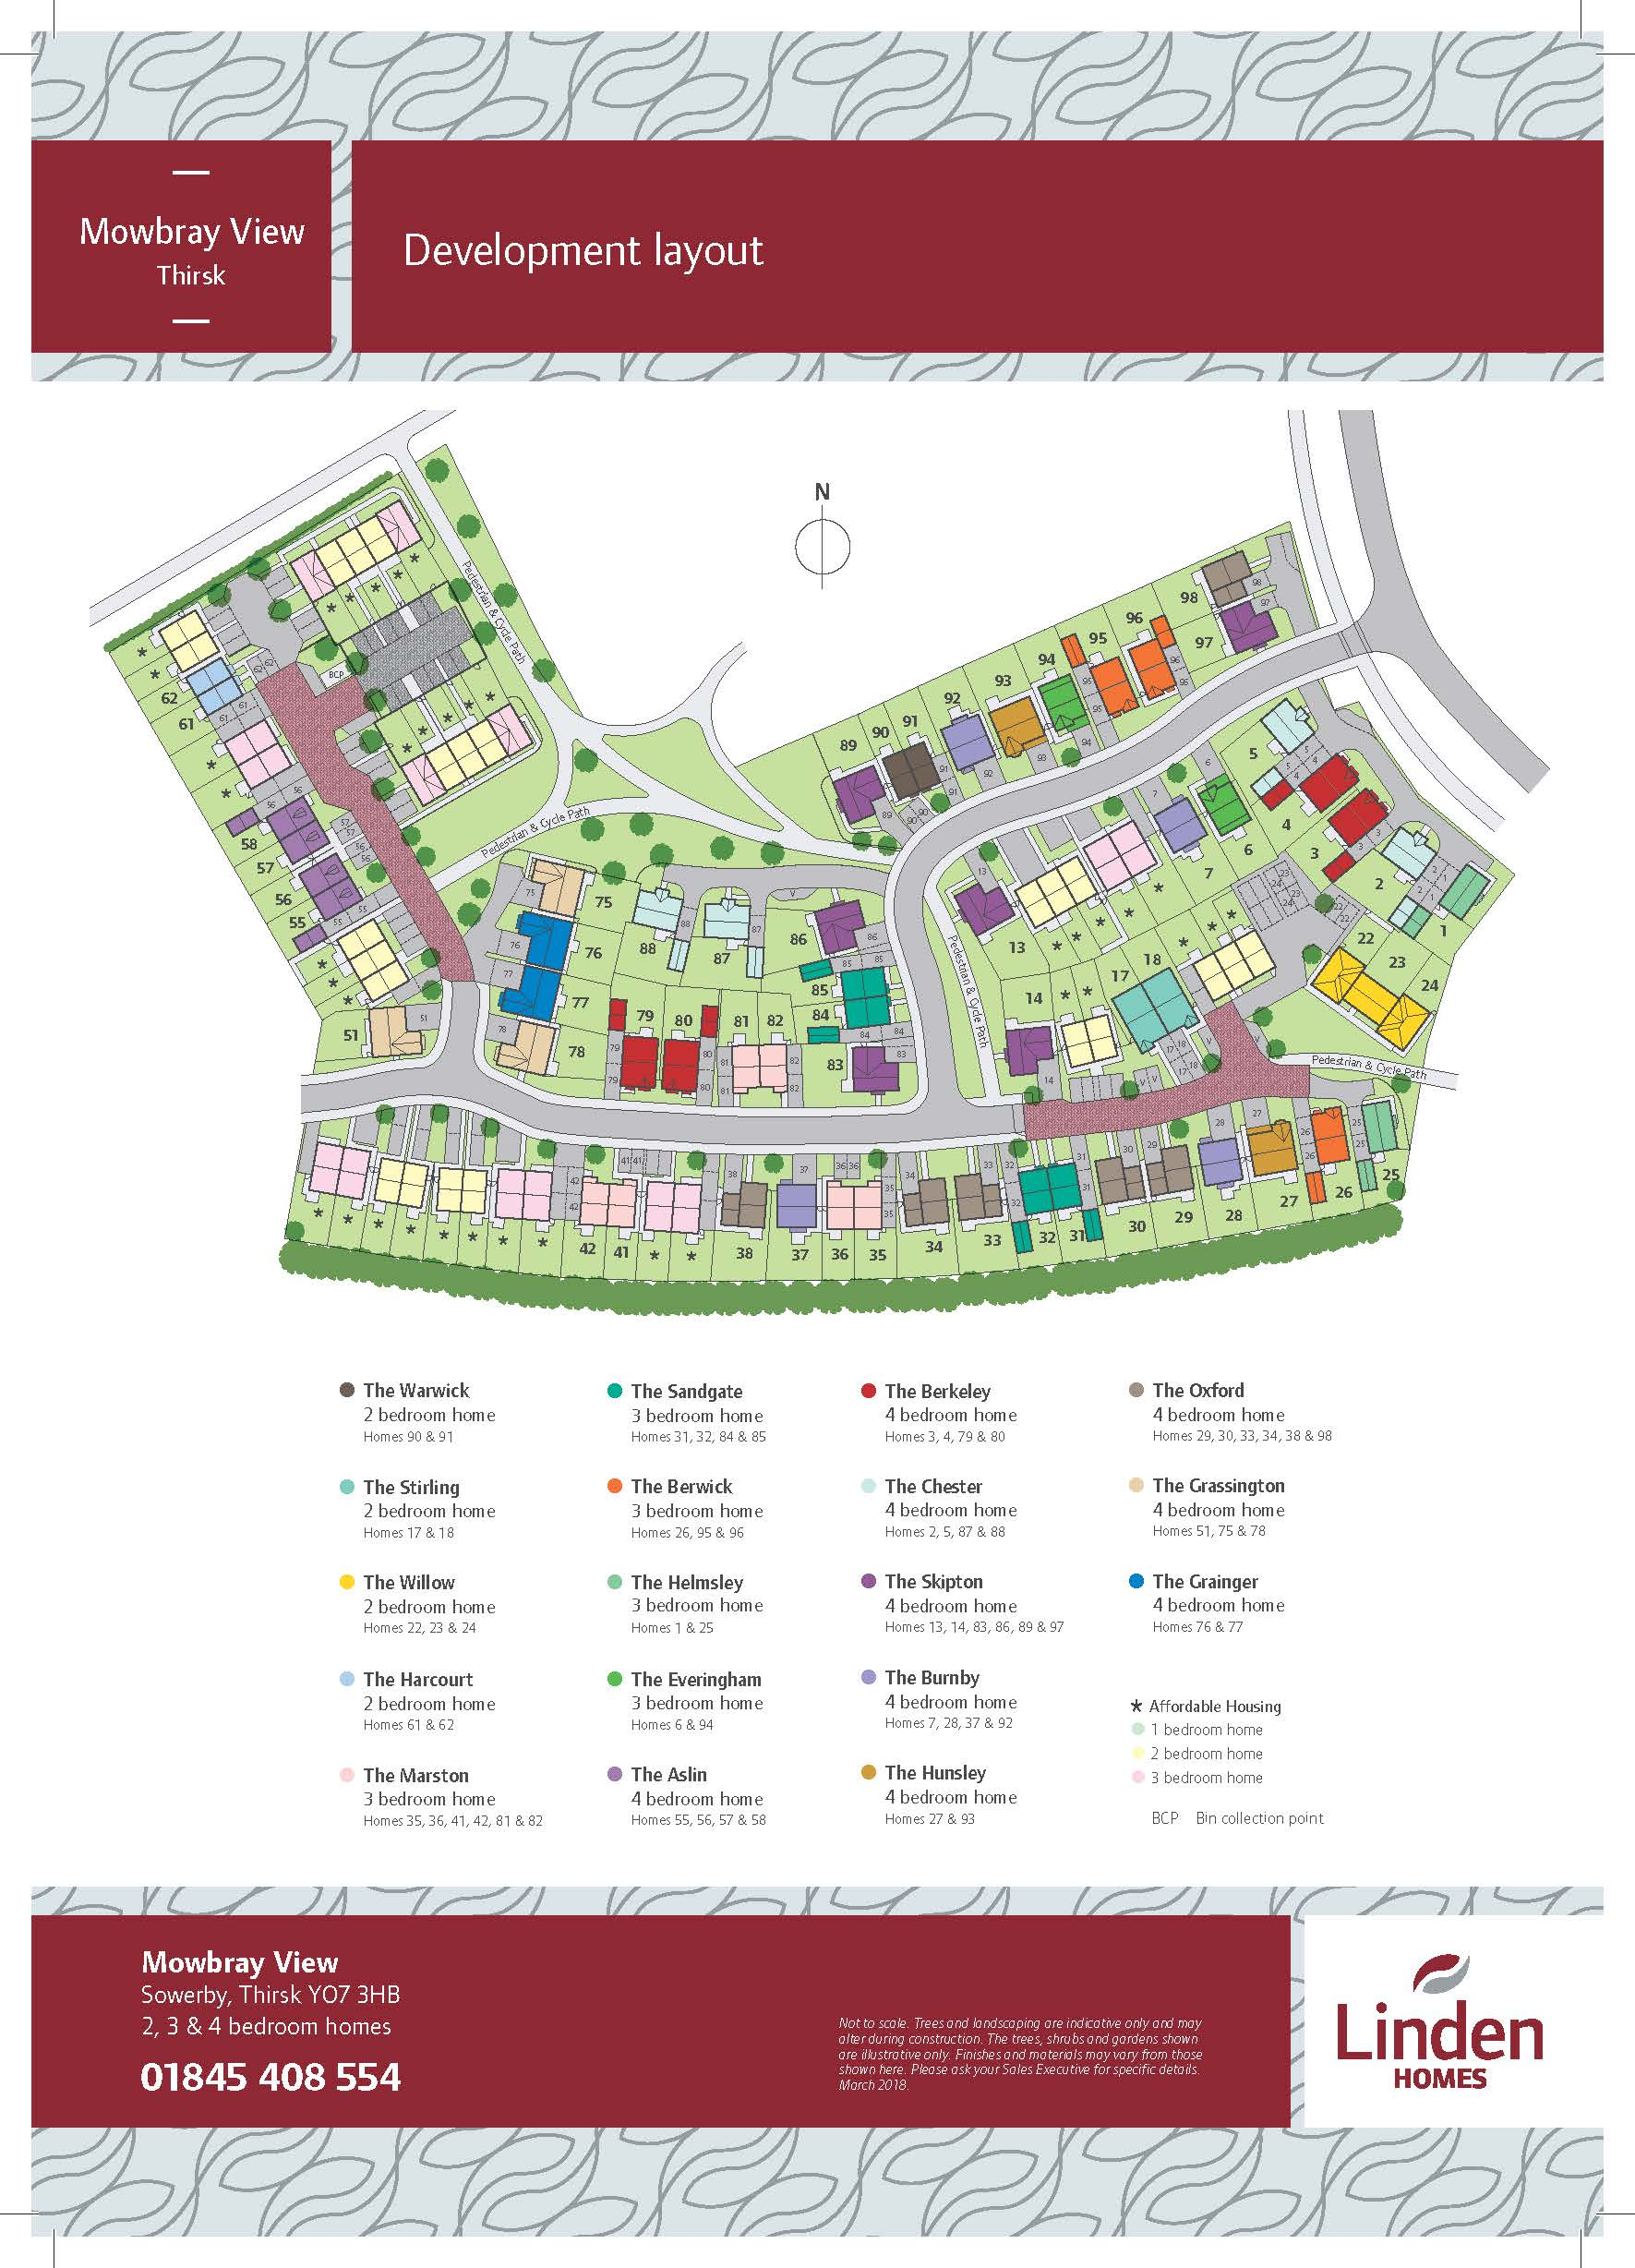 Mowbray View Site Map